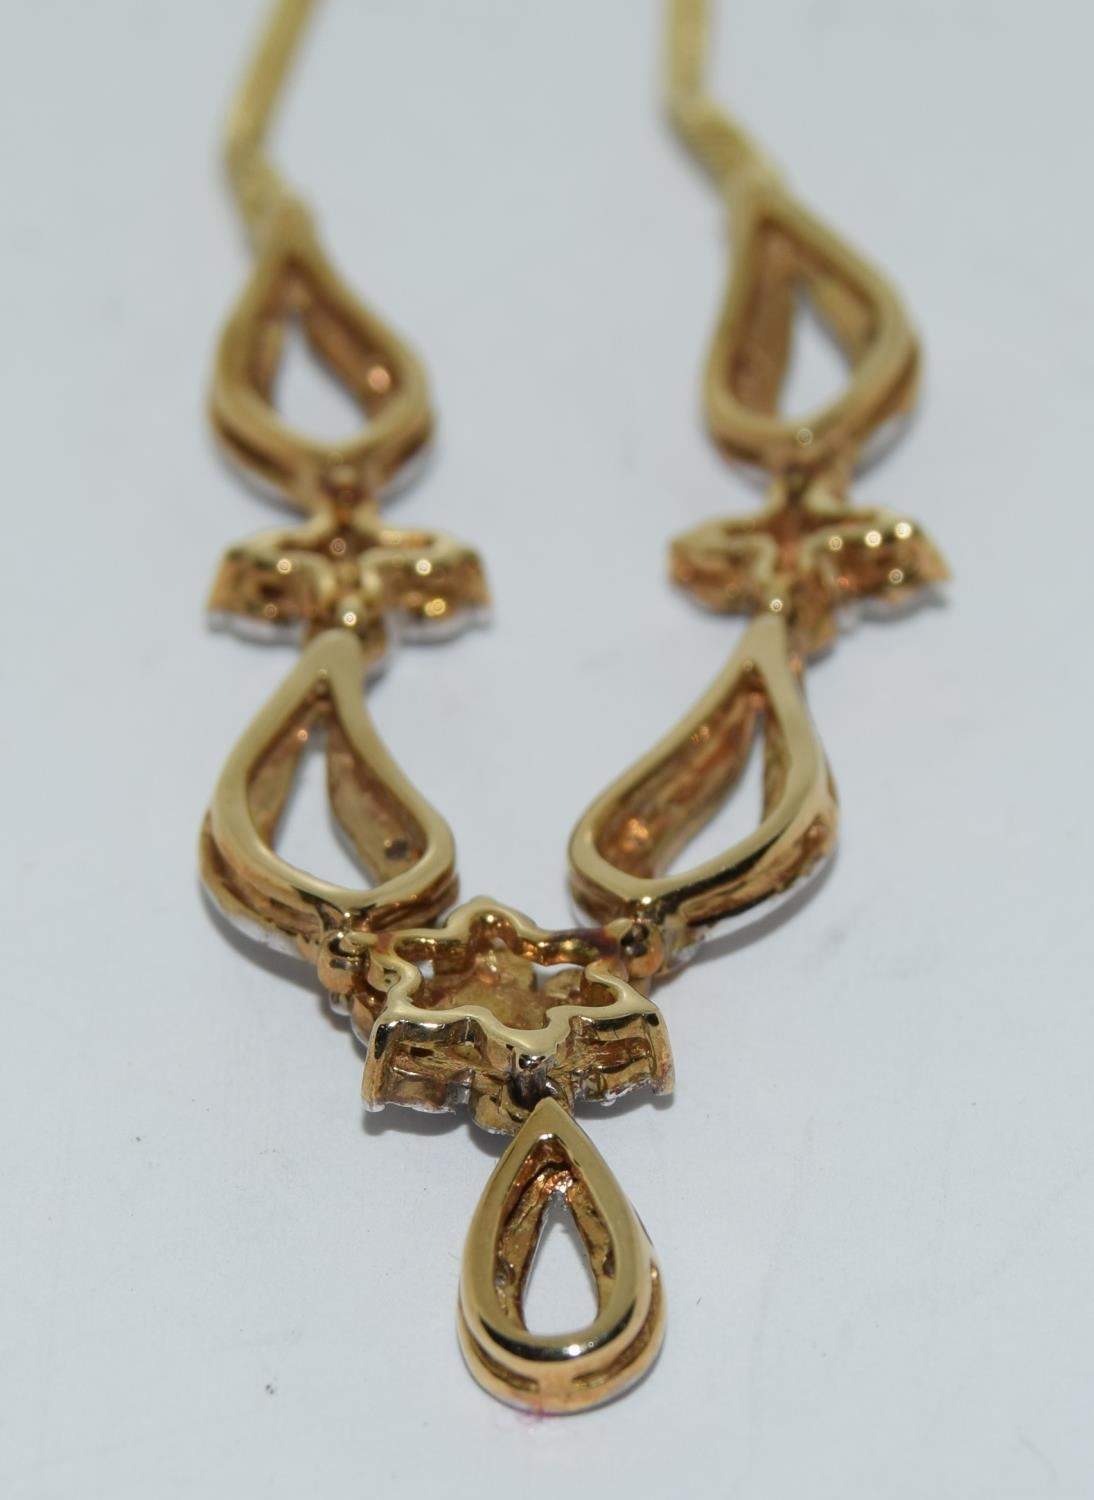 Diamond 9ct gold necklace, boxed - Image 4 of 5